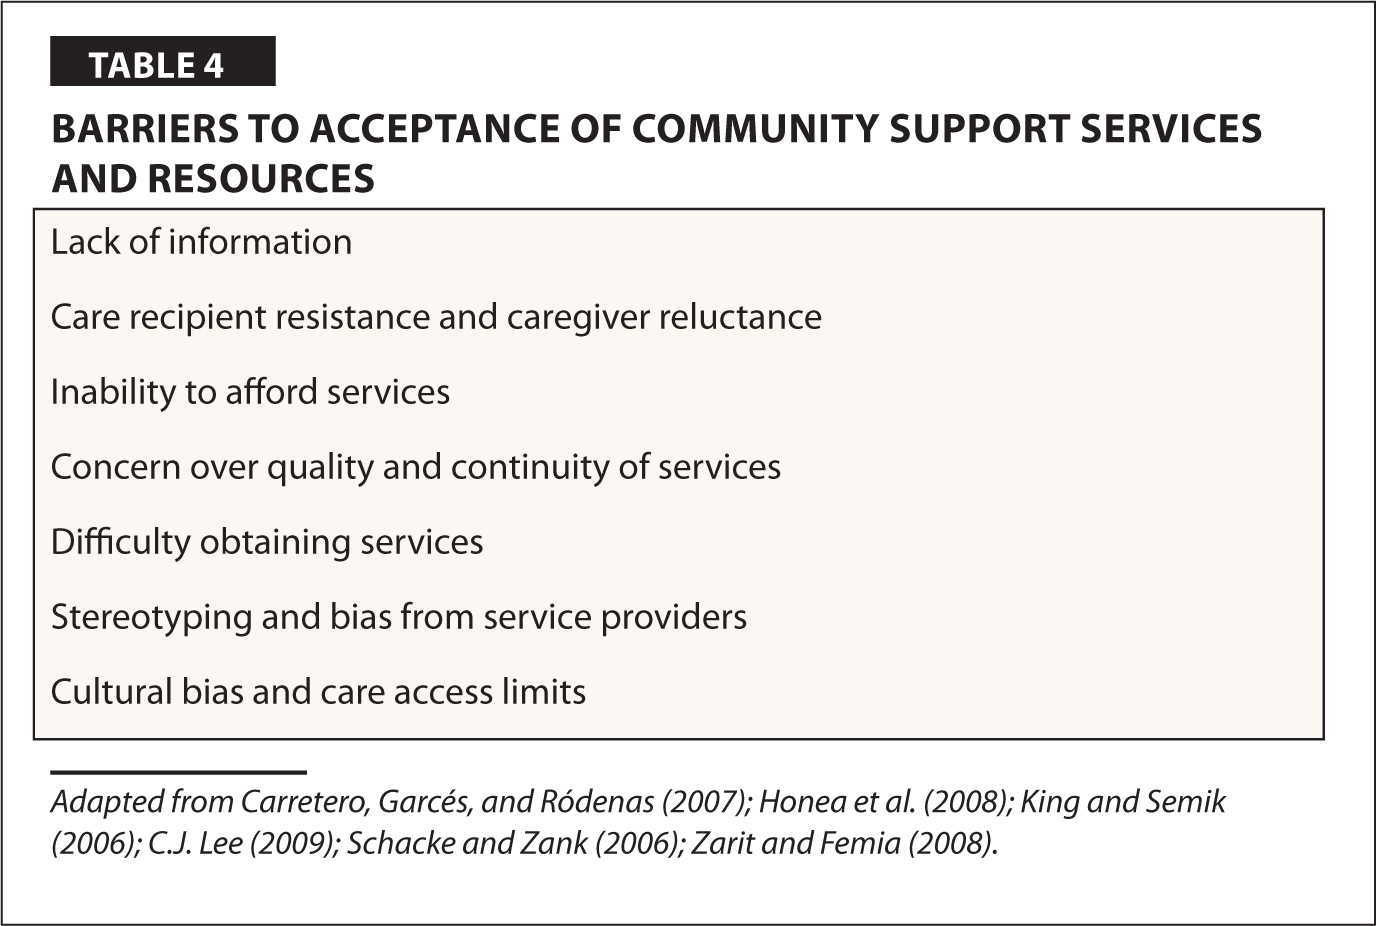 Barriers to Acceptance of Community Support Services and Resources